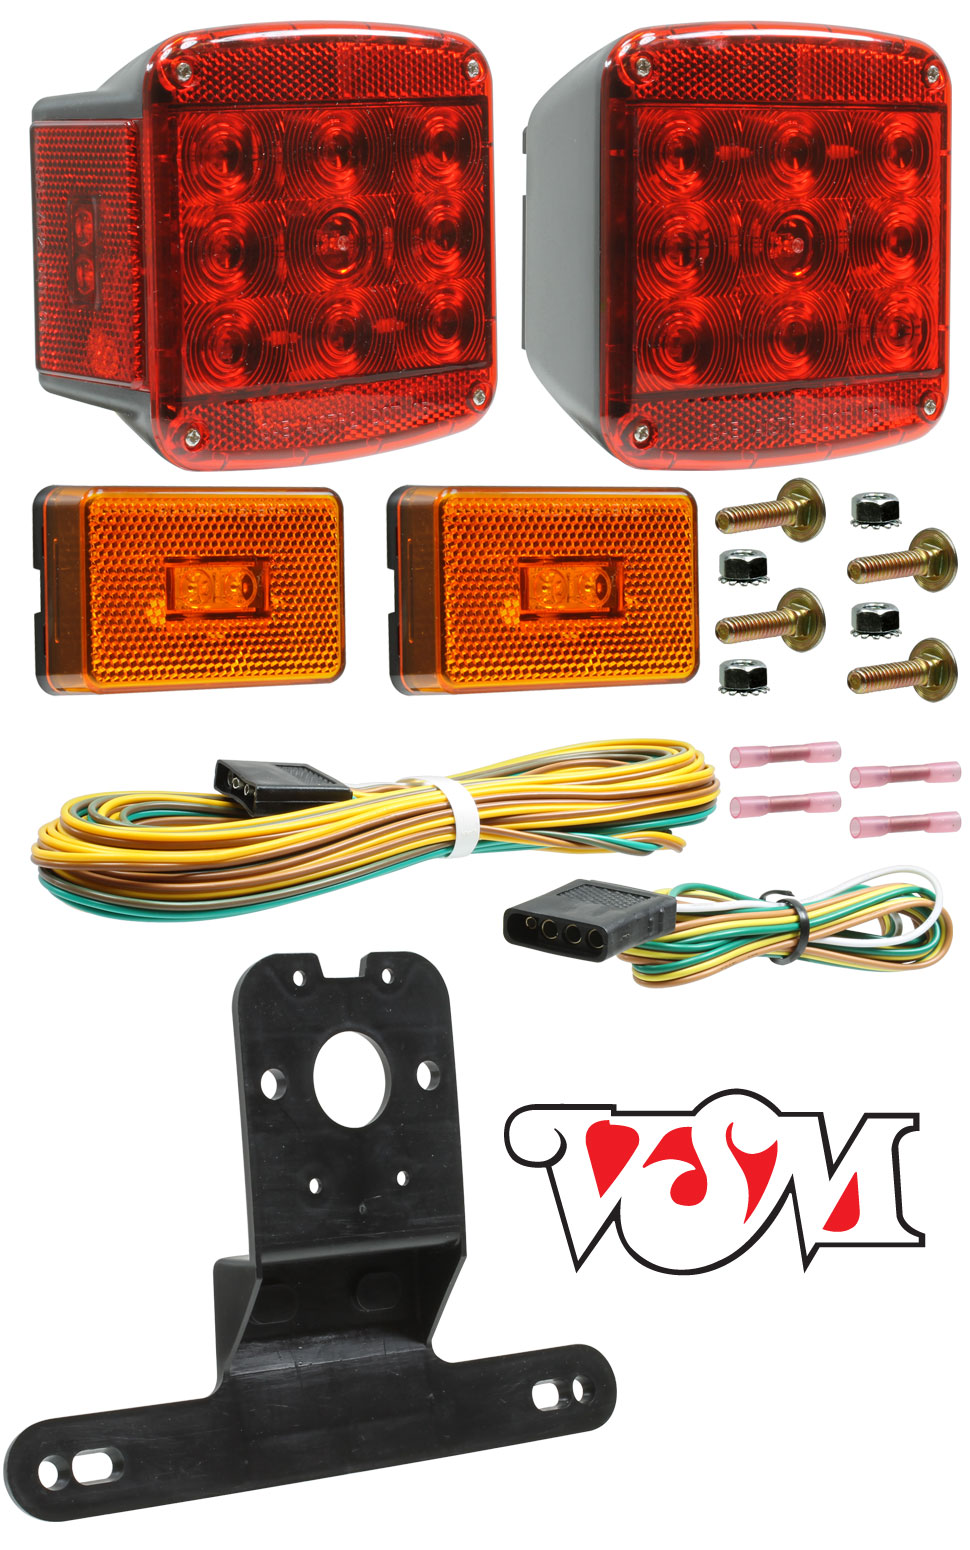 Universal Waterproof Led Trailer Light Kit By Vsm Harness Vsm5551dk With Sumbersible Lamps